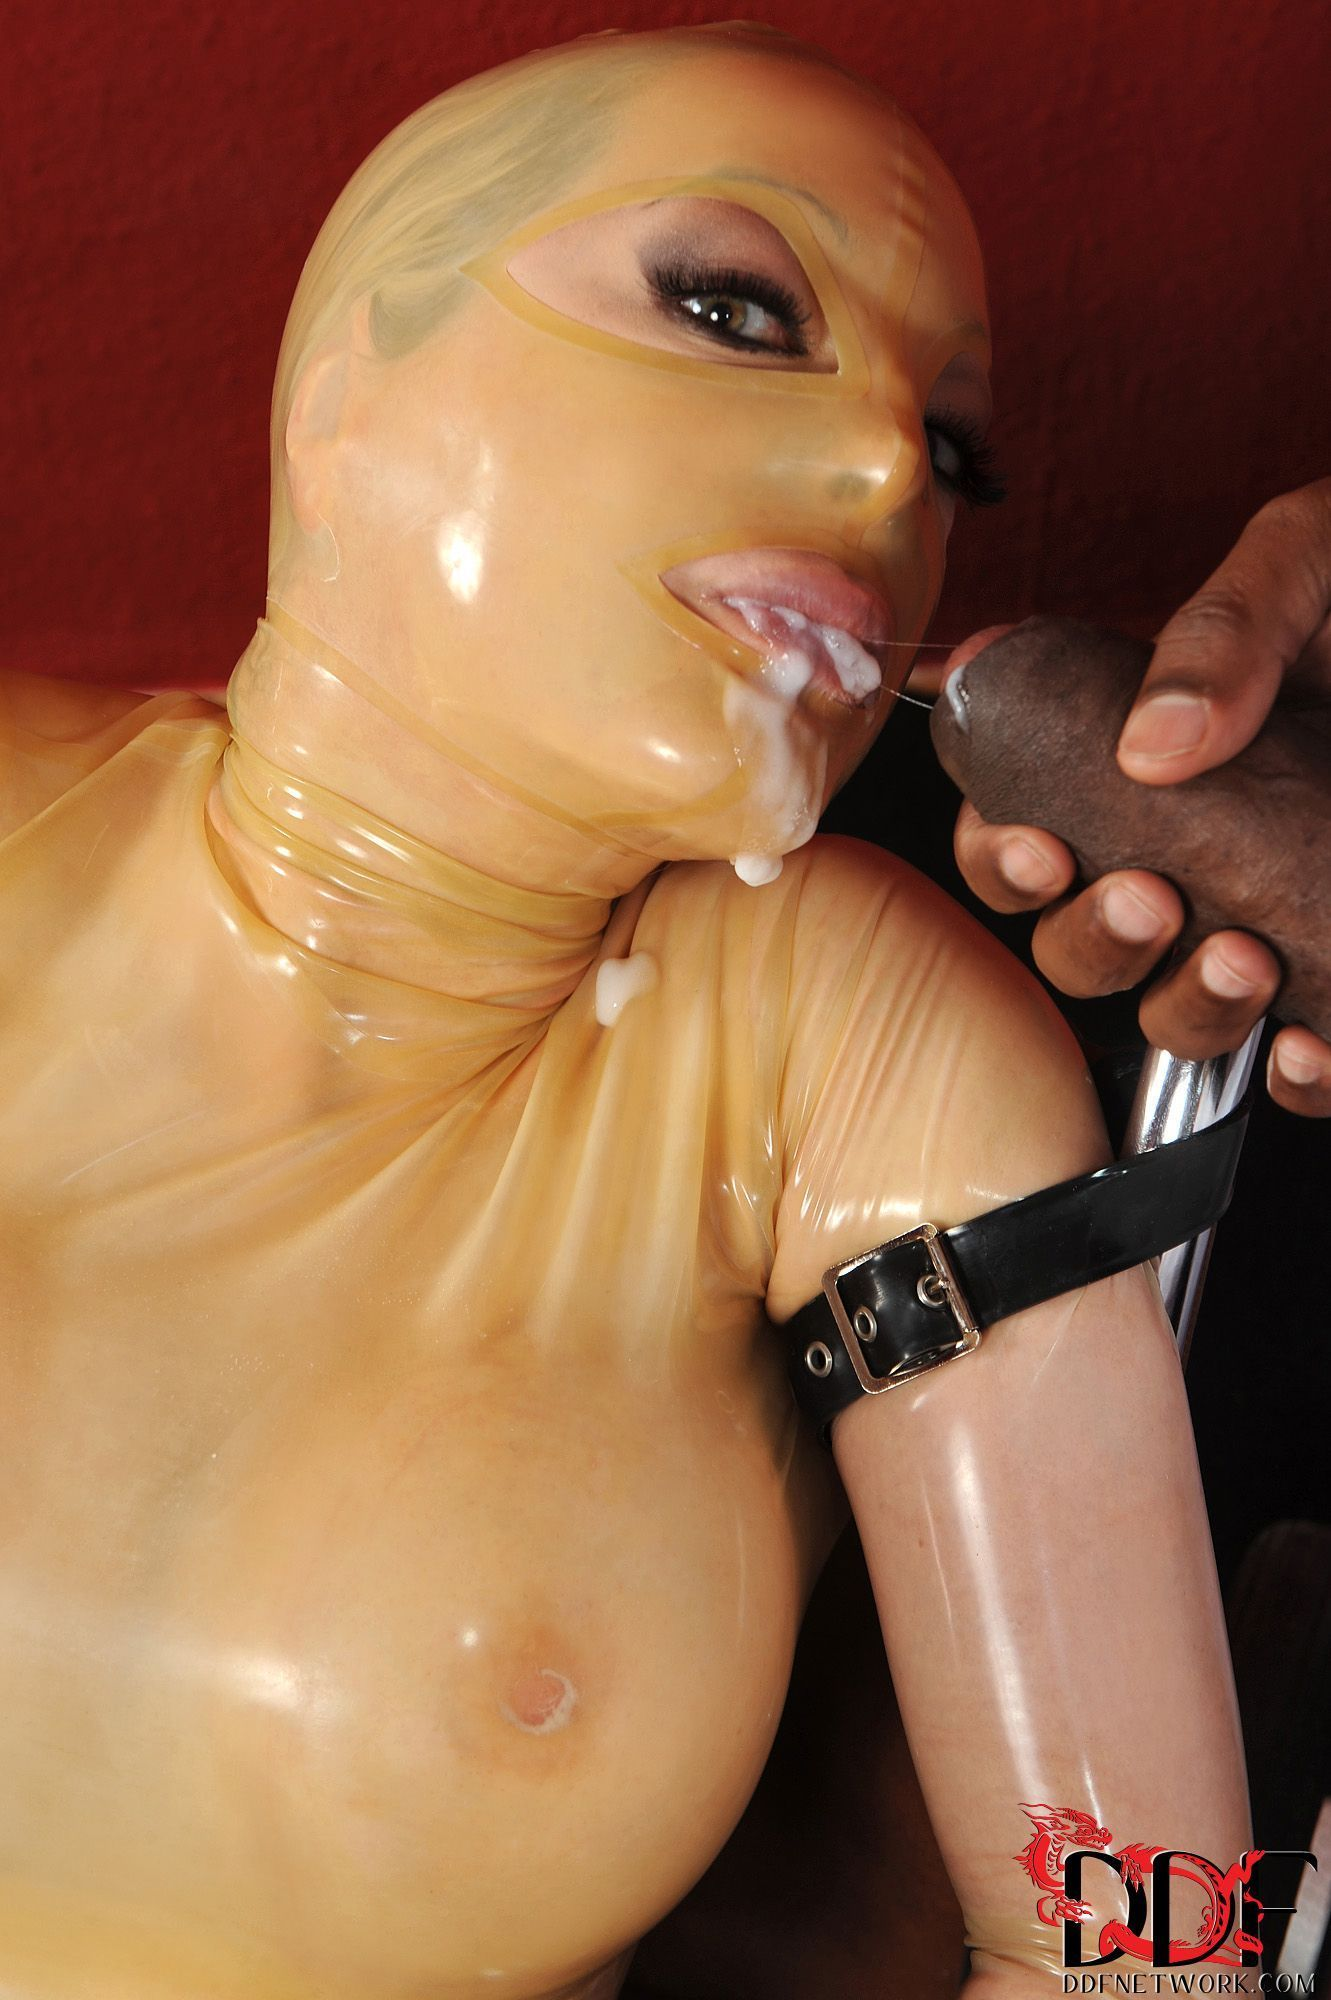 Anal Sex With Bondage latex lucy anal bondage . top porn photos. comments: 2